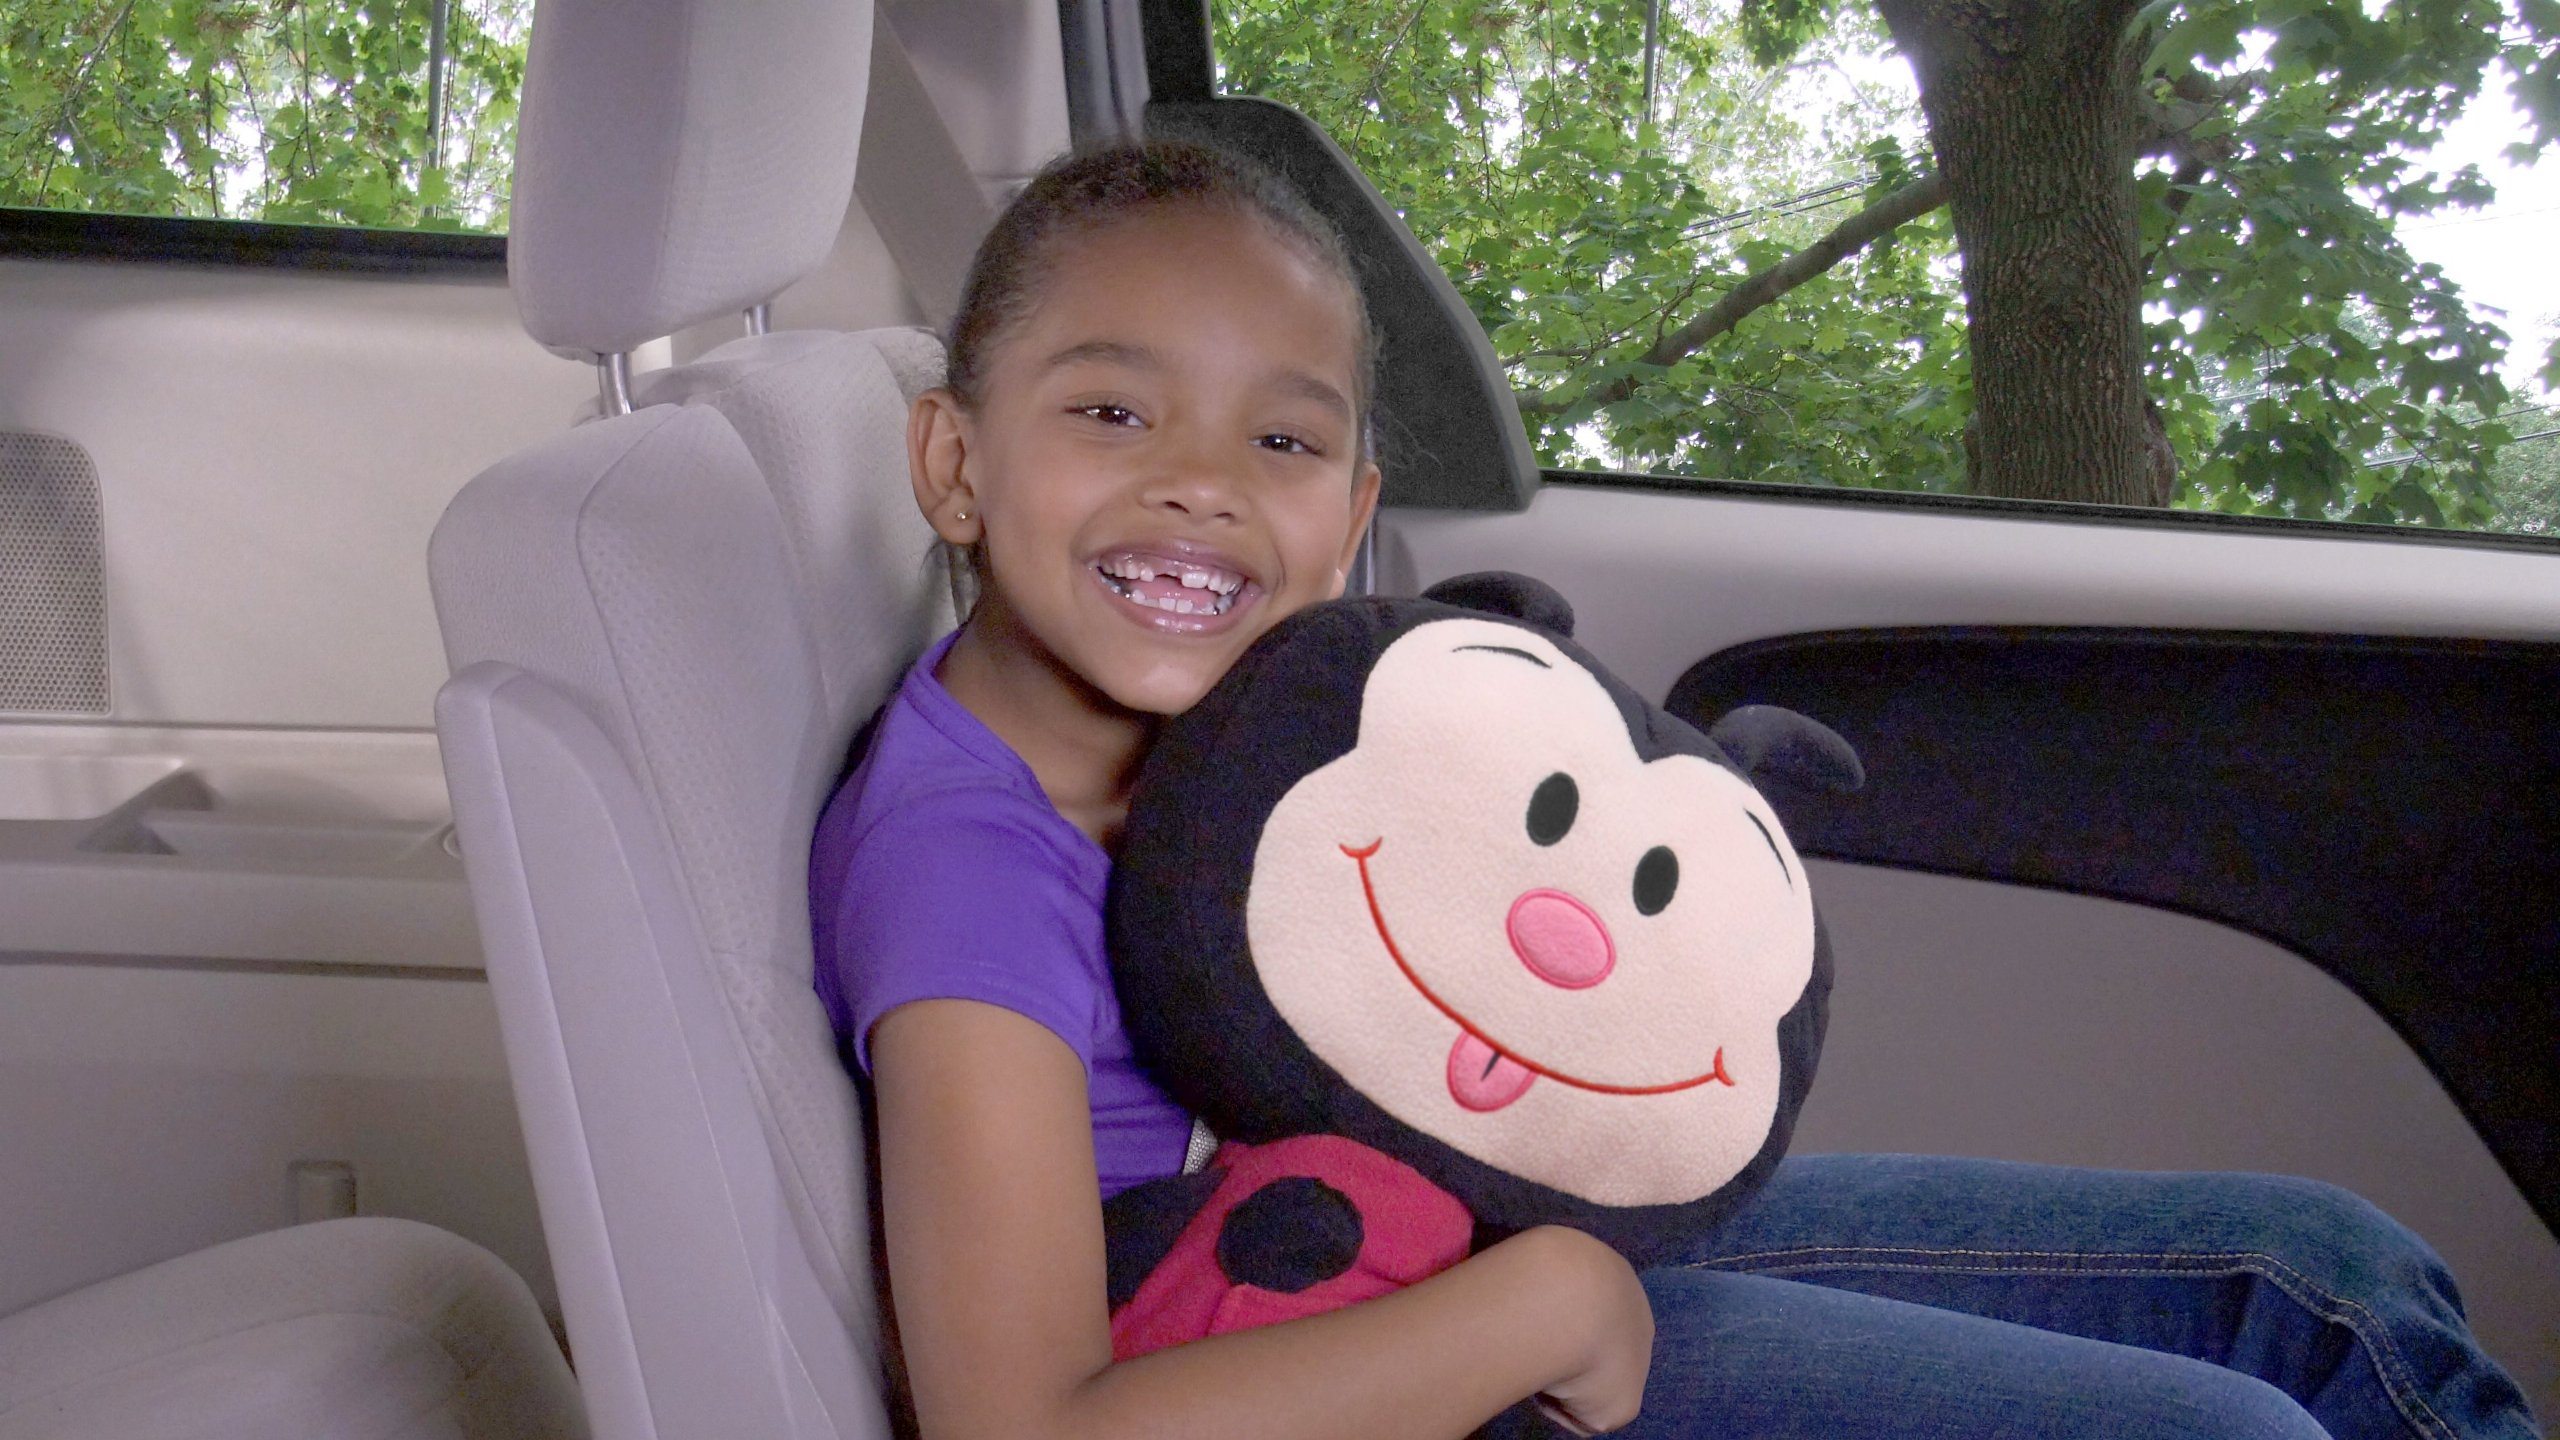 Seat Pets (Ladybug) by Jay at Play - As Seen on TV - Kids Seat Belt Car Travel Pillow and Plush Animal Toy - Compatible with Any Safety Belt to Provide Head & Neck Support by Lambow (Image #1)